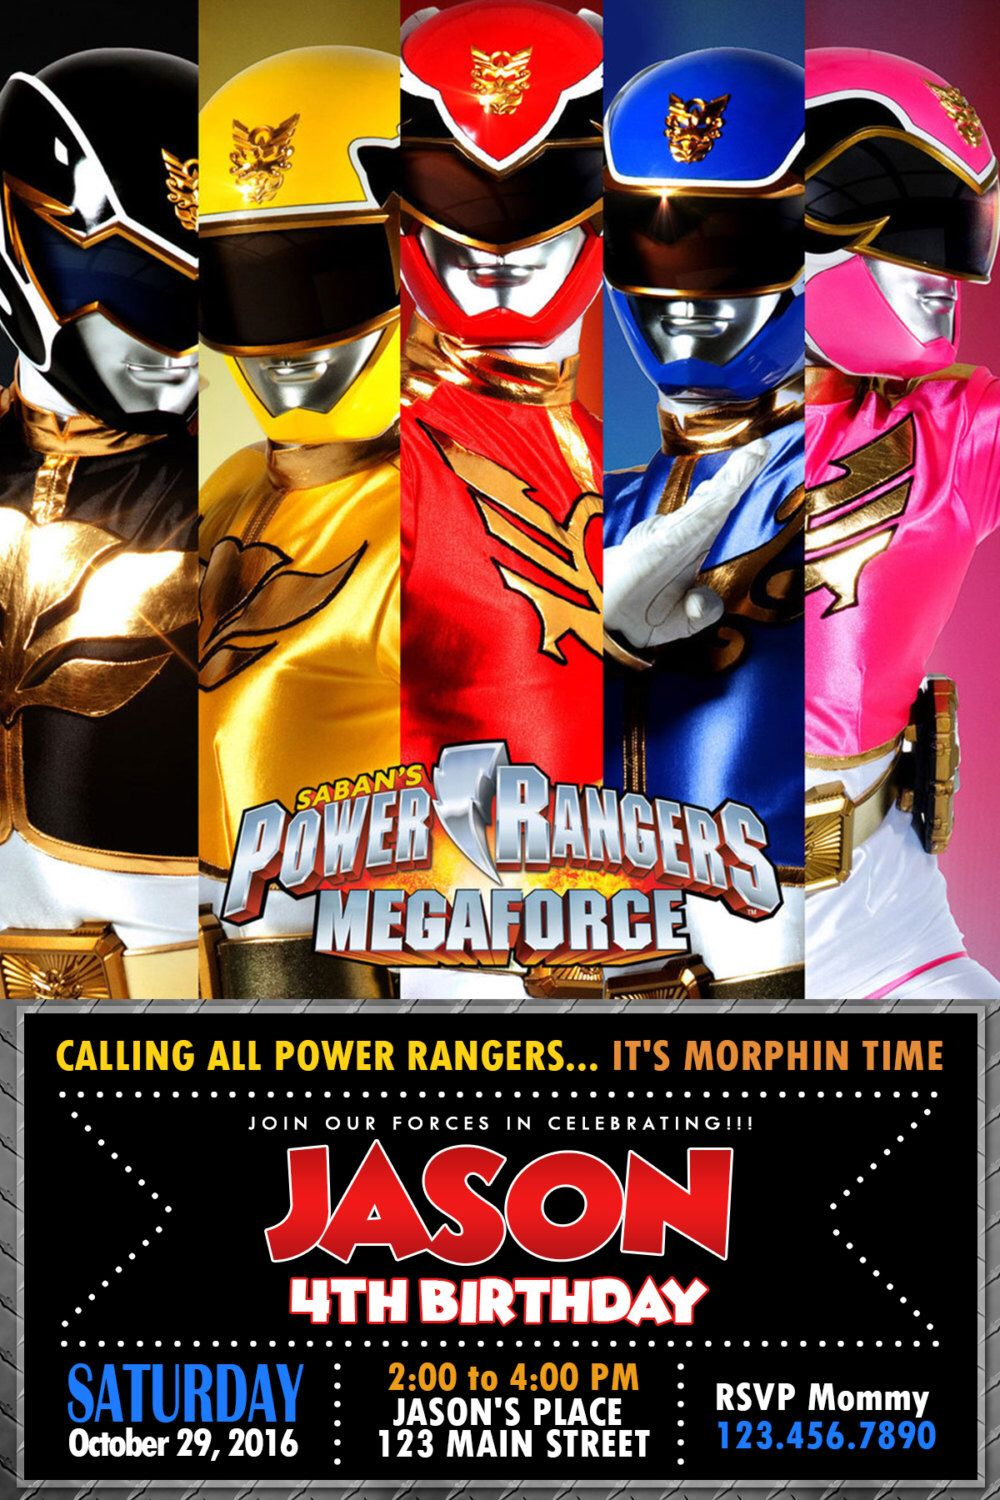 Power Ranger Power Ranger Invitation Power Ranger Card Power Ranger Birthday Greeting Car Power Ranger Birthday Power Rangers Invitations Power Ranger Party